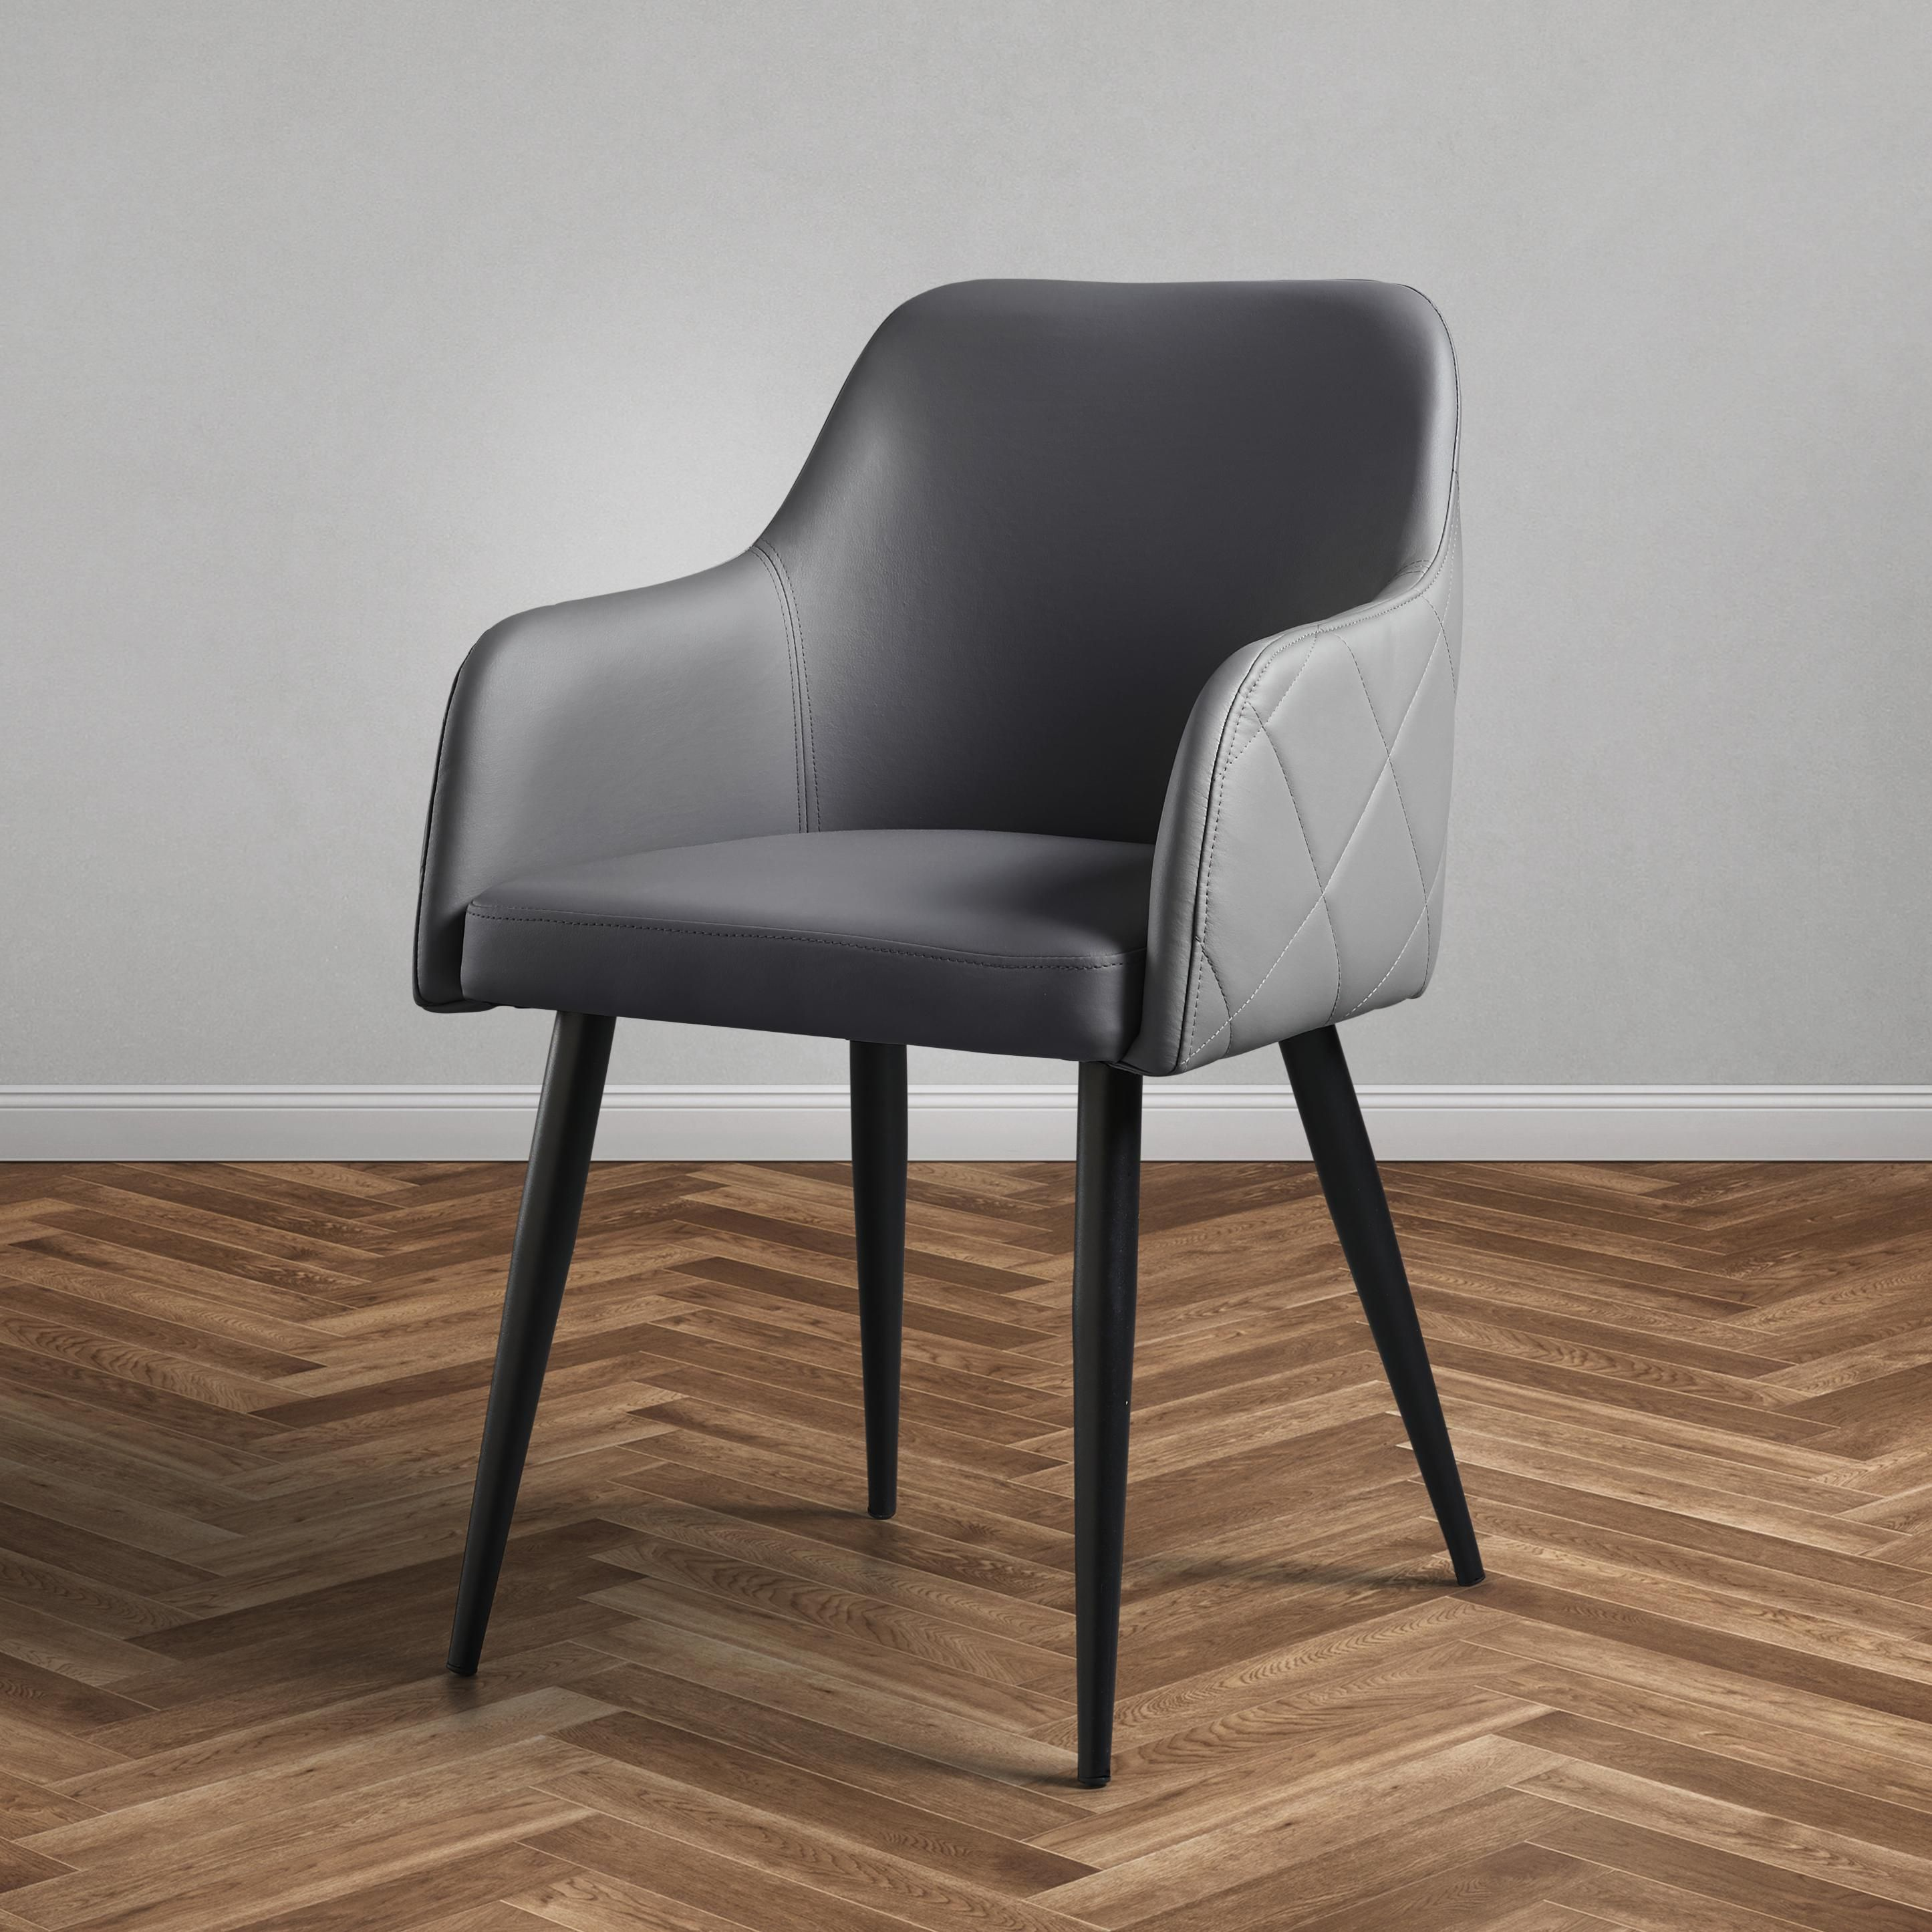 Armlehnstuhl Andre Furniture Furniture Chair Dining Chairs